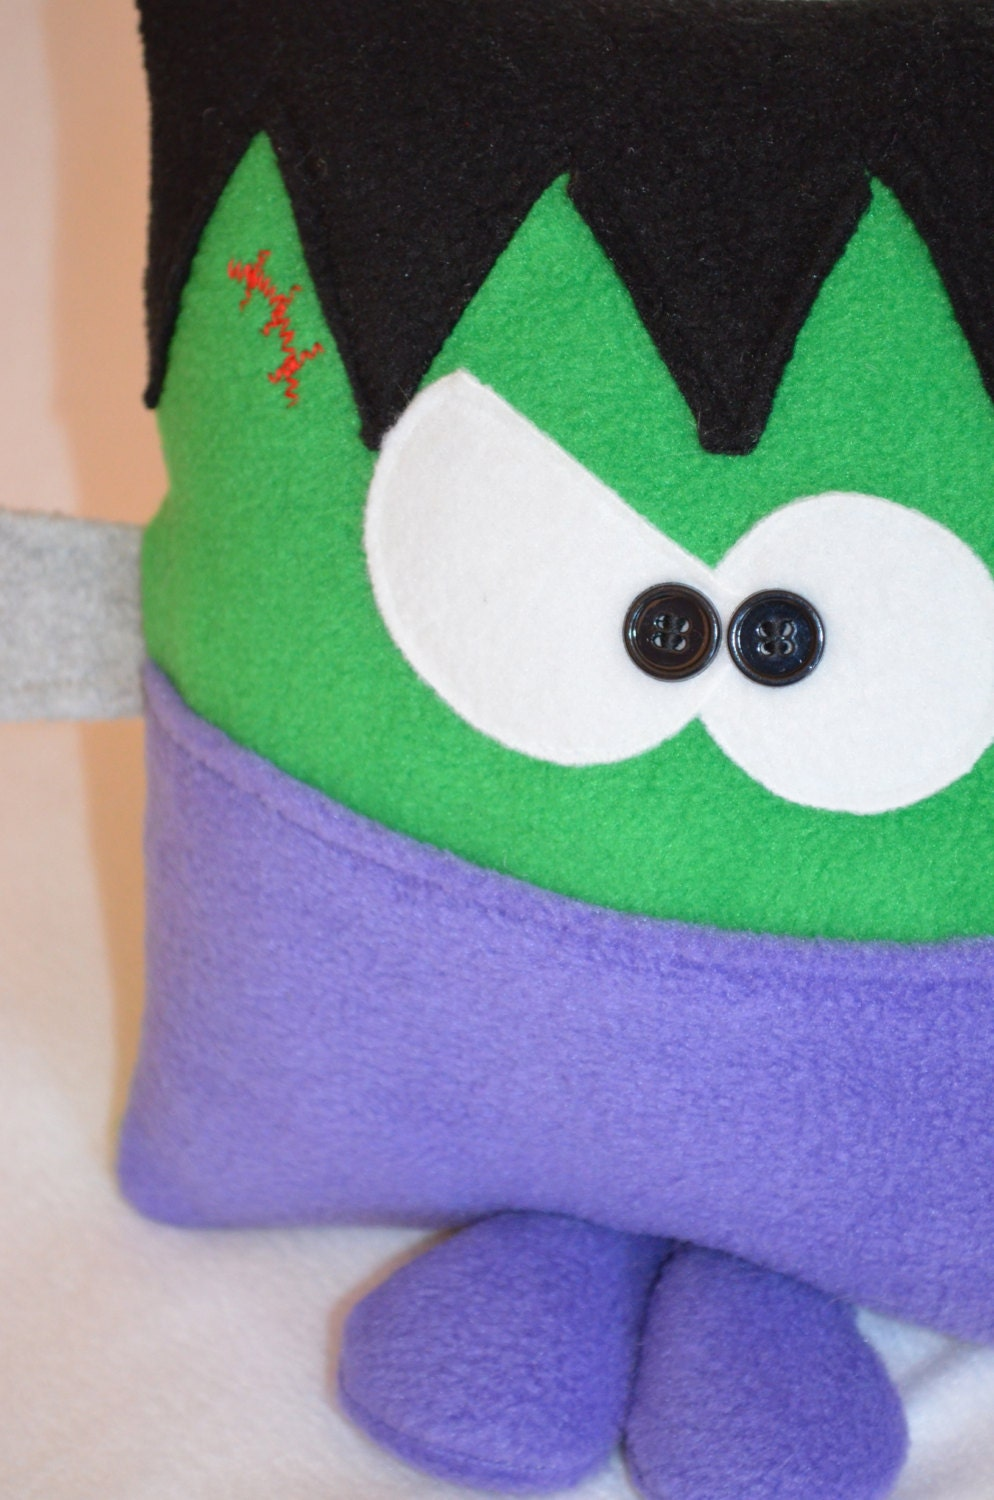 FrankenCritter the Pocket Pillow, great for Halloween - kookycritters